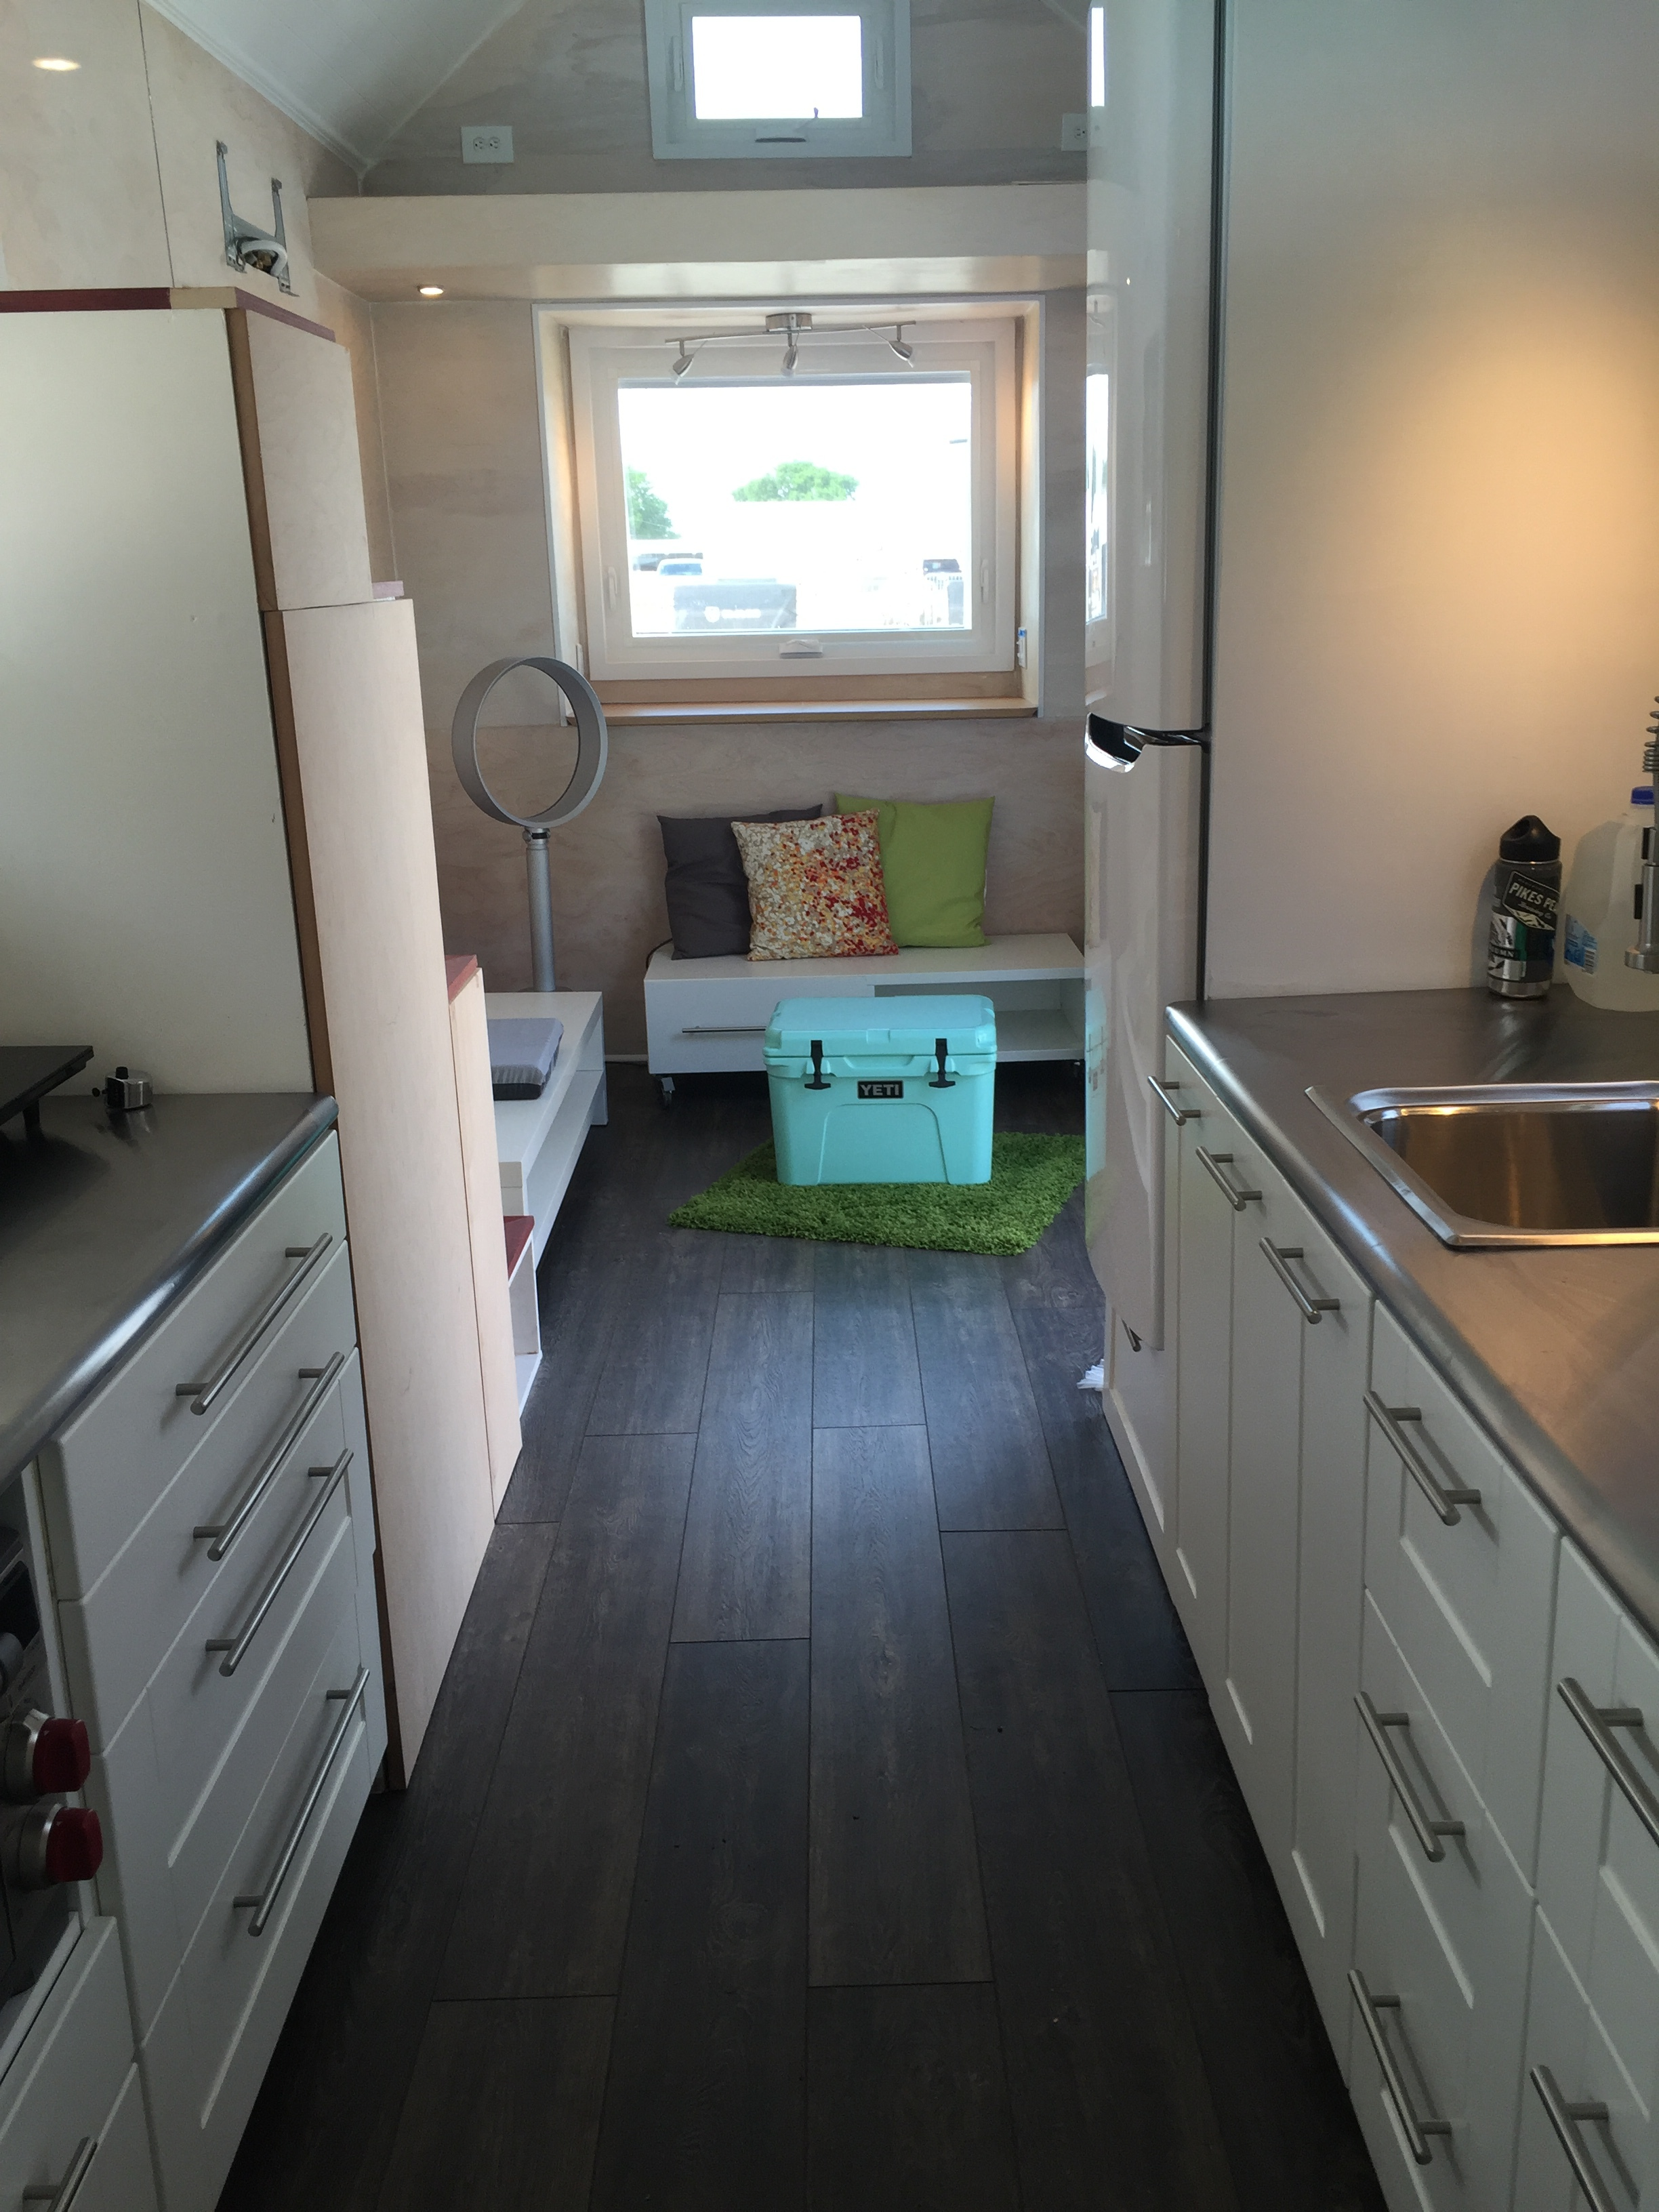 Using Ikea Cabinets In A Tiny House An In Depth Review Tiny Modern Homes